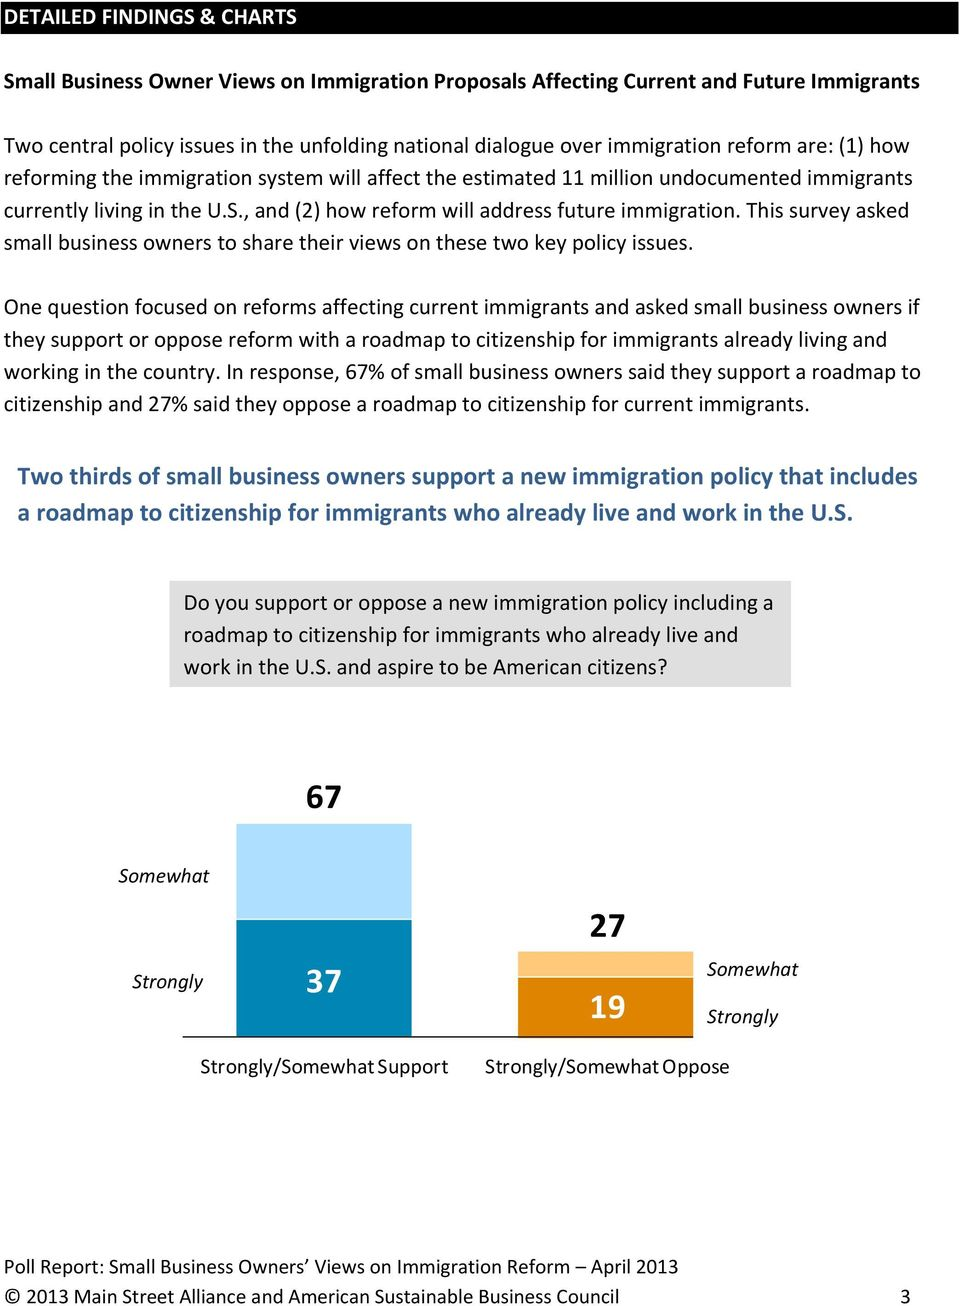 This survey asked small business owners to share their views on these two key policy issues.